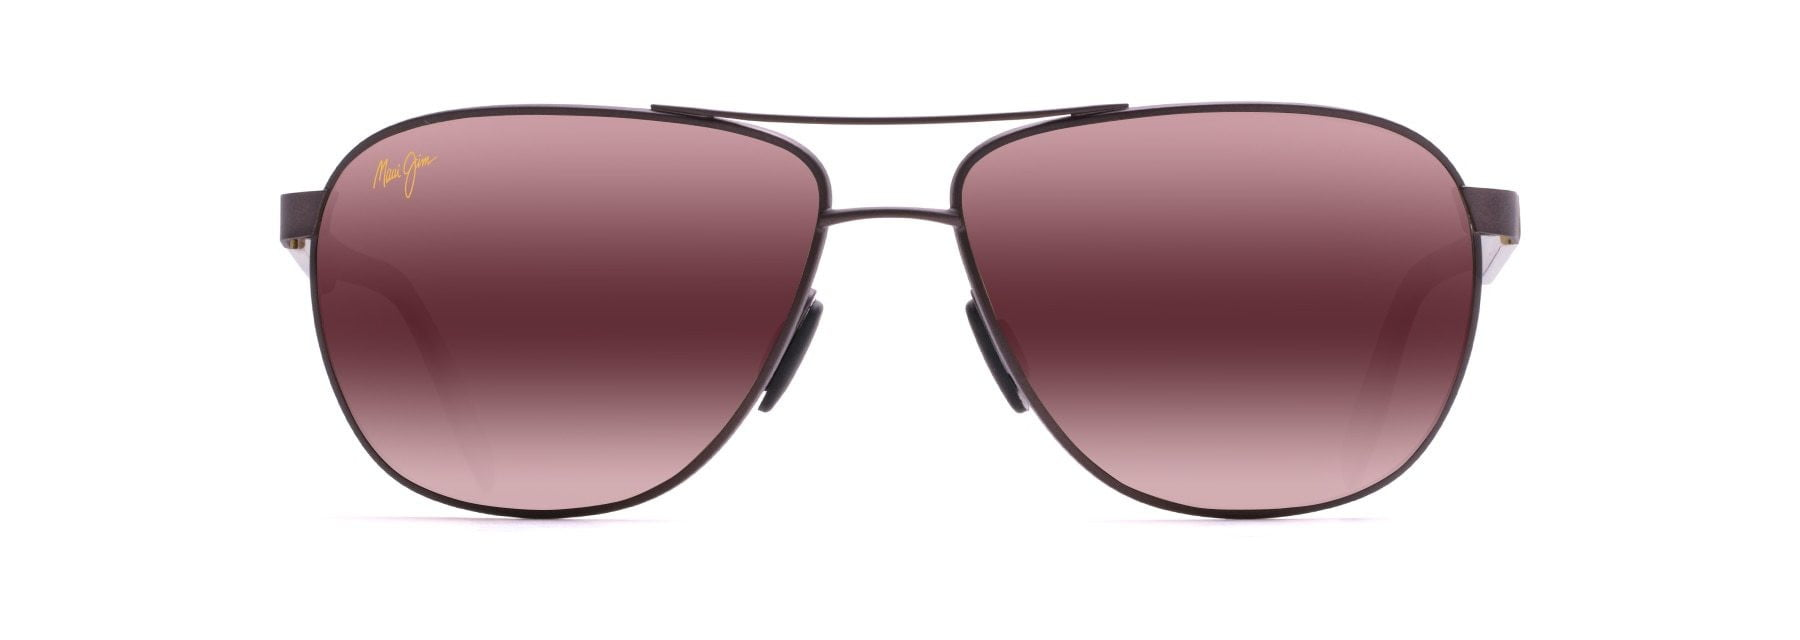 MyMaui Castles MM728-004 Sunglasses